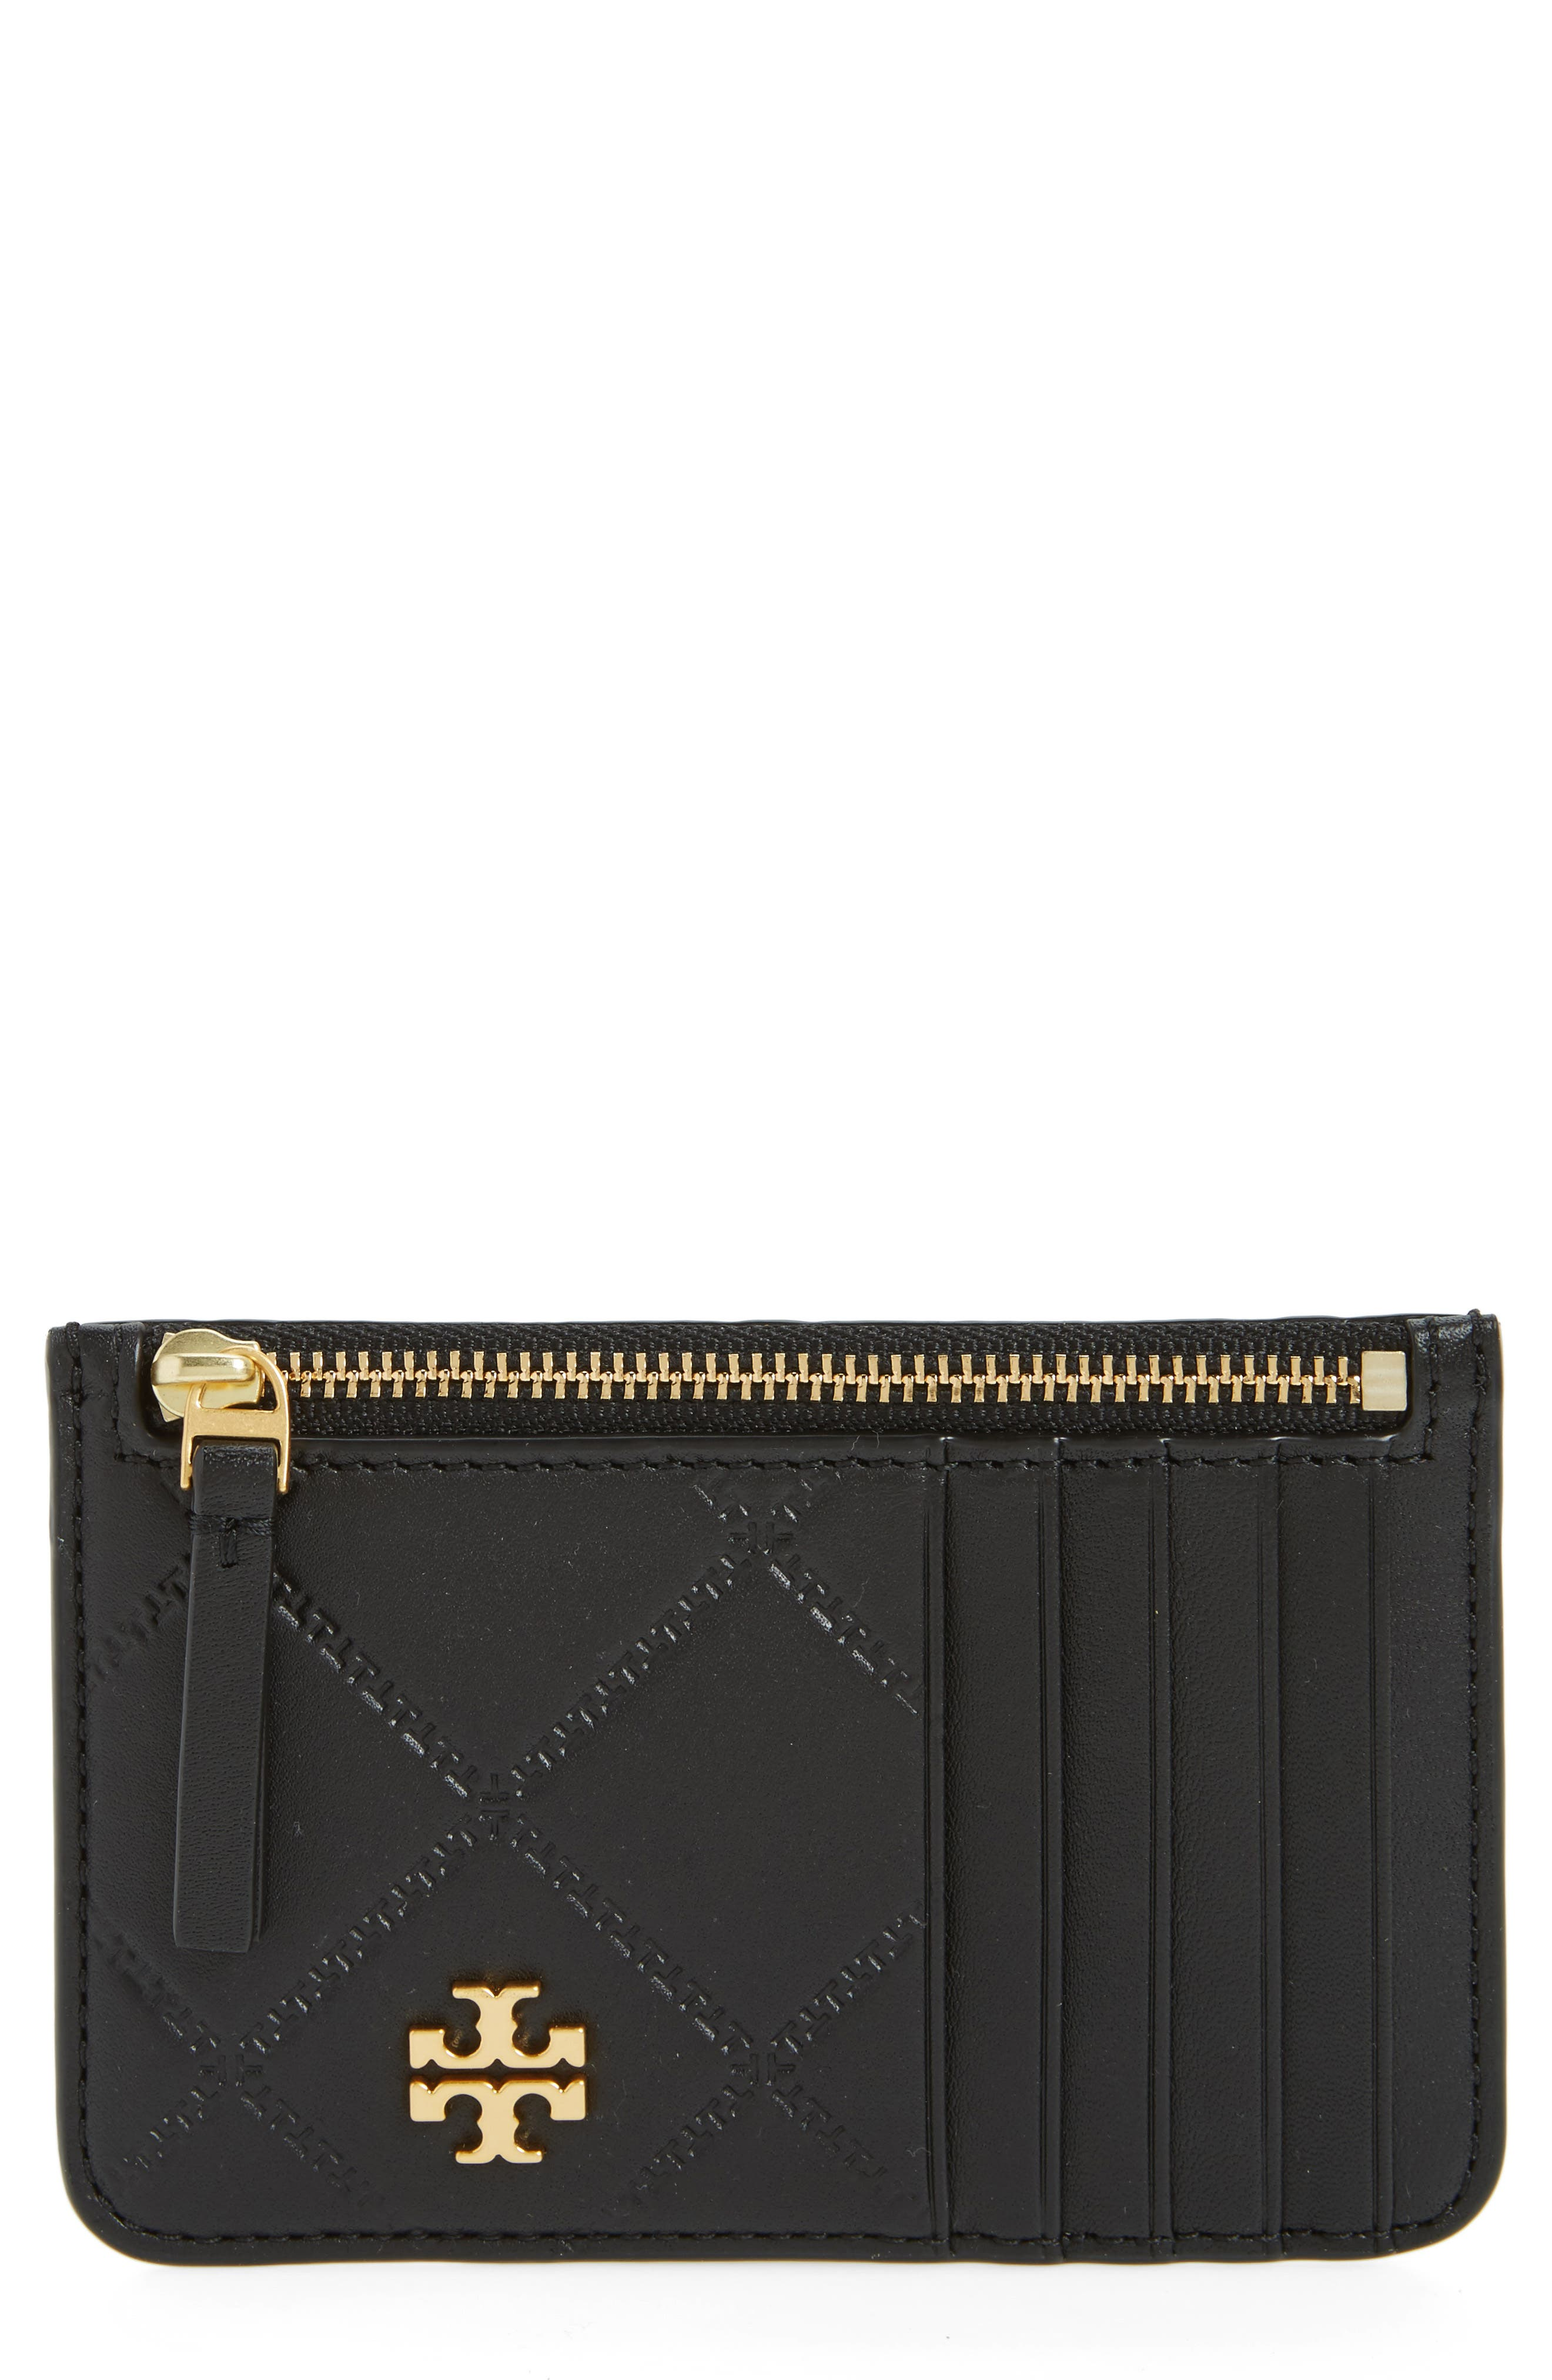 Main Image - Tory Burch Georgia Leather Card Case